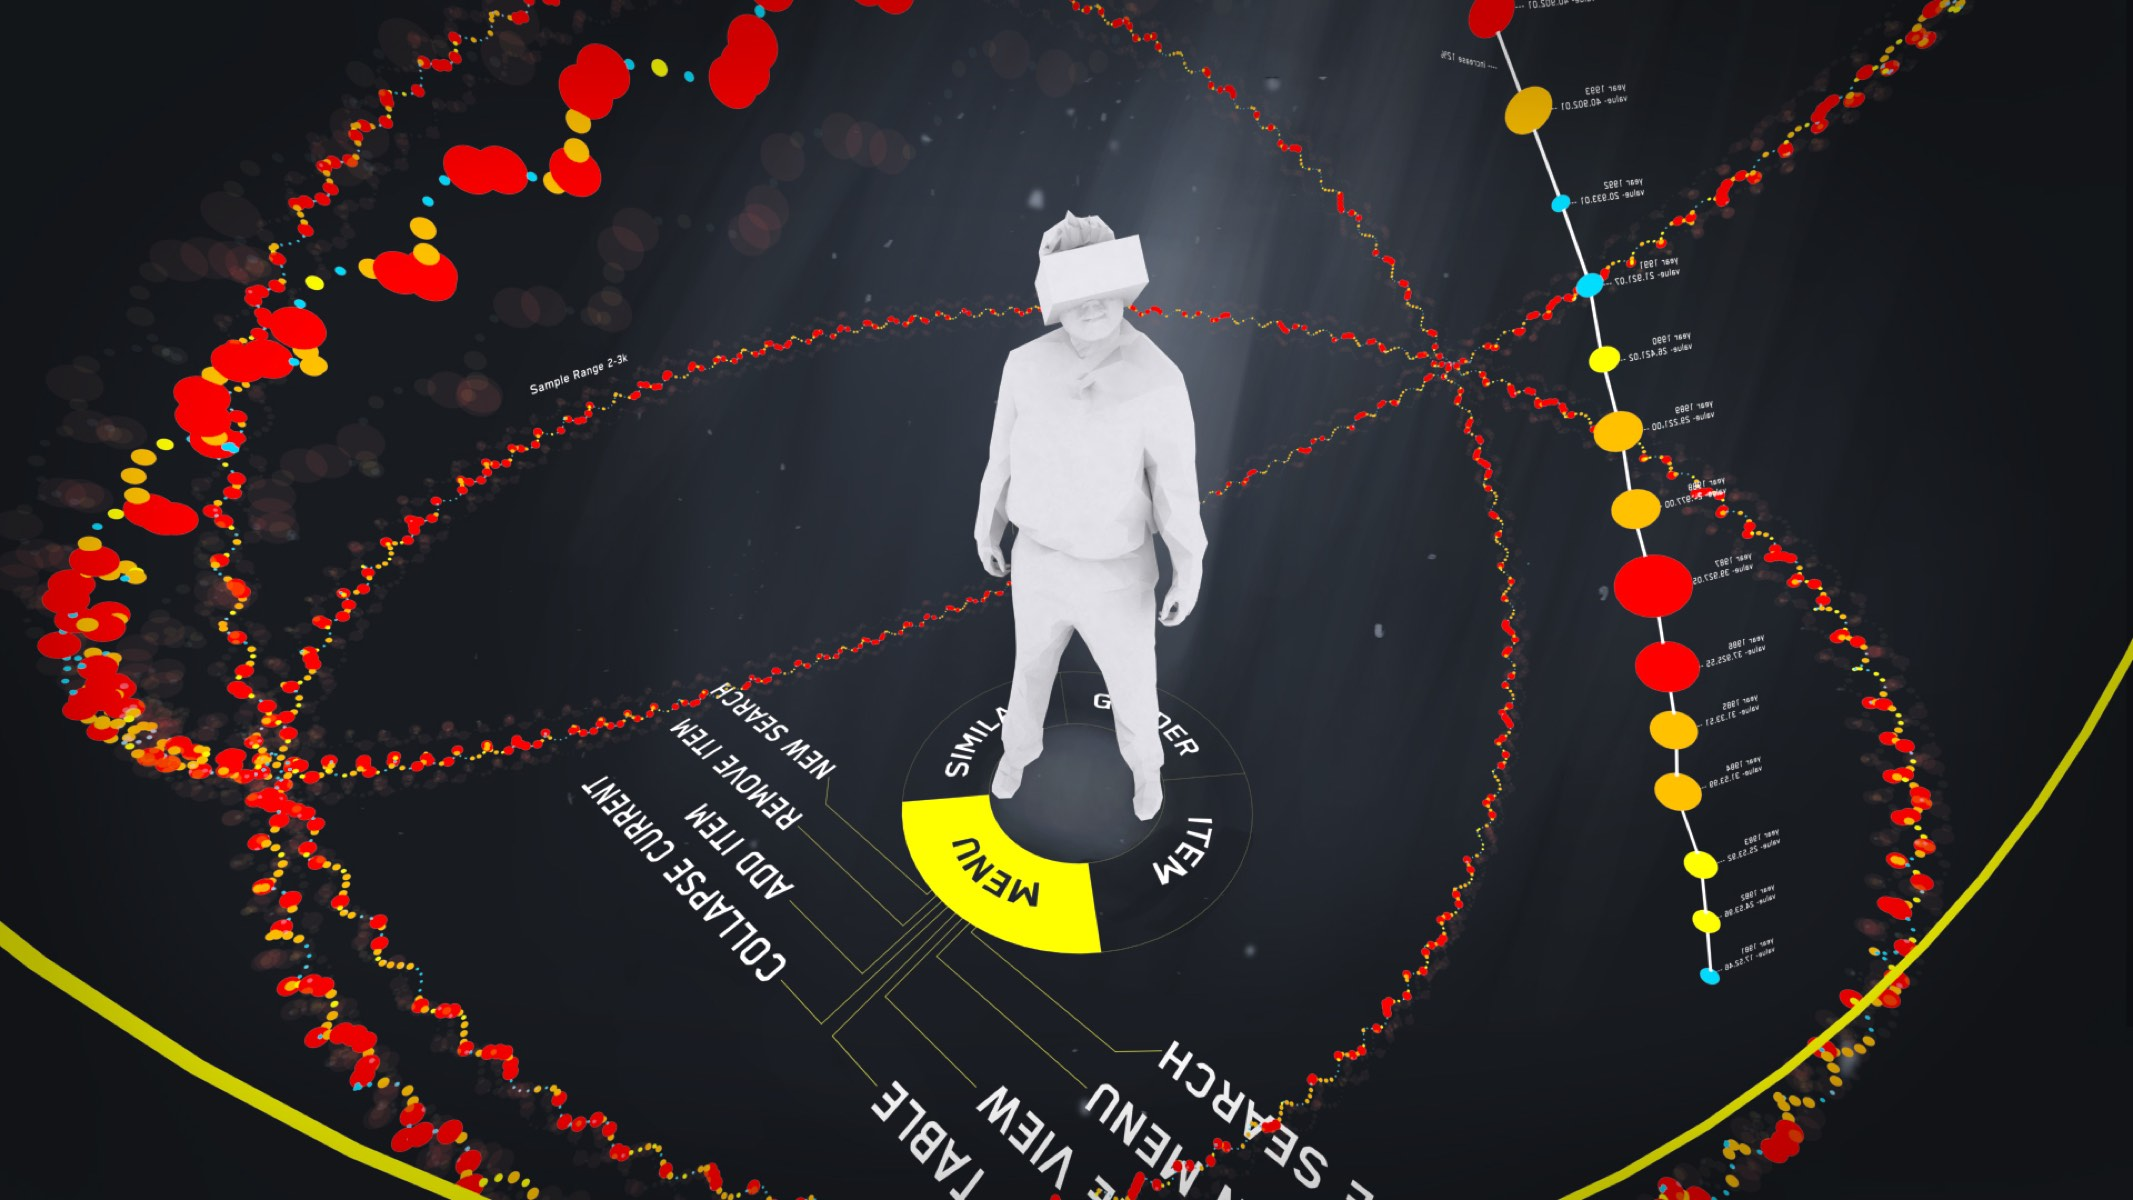 LumaPie's VR tool visualises research data